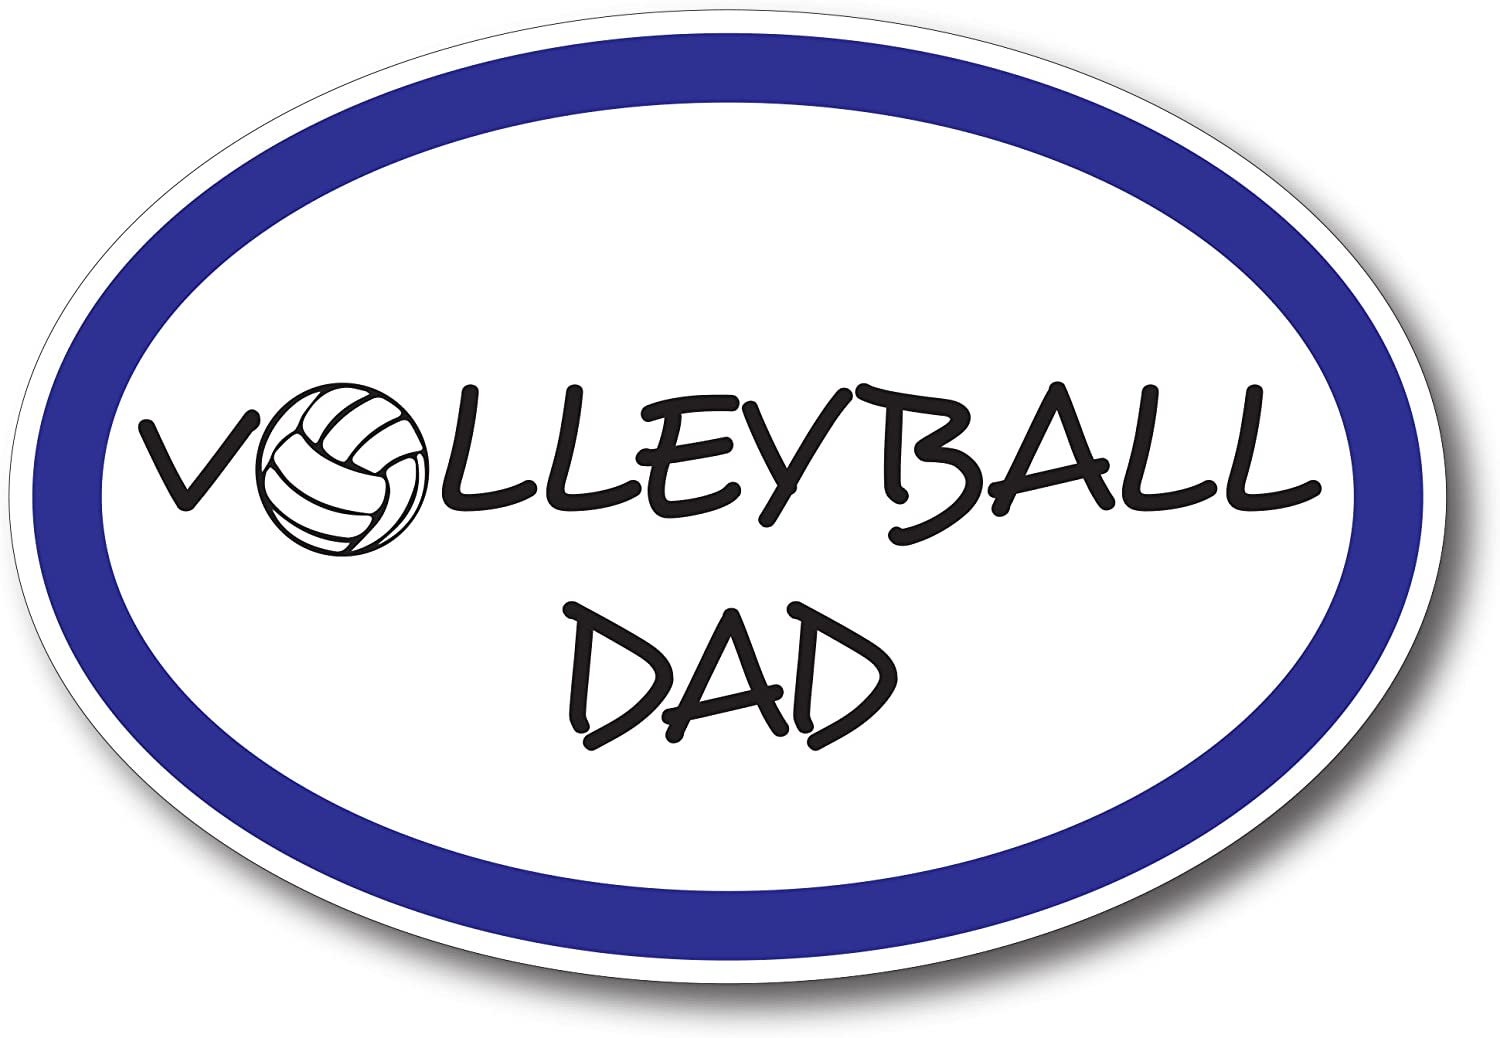 Volleyball Dad Car Magnet Decal 4 x 6 Oval Heavy Duty for Car Truck SUV Waterproof